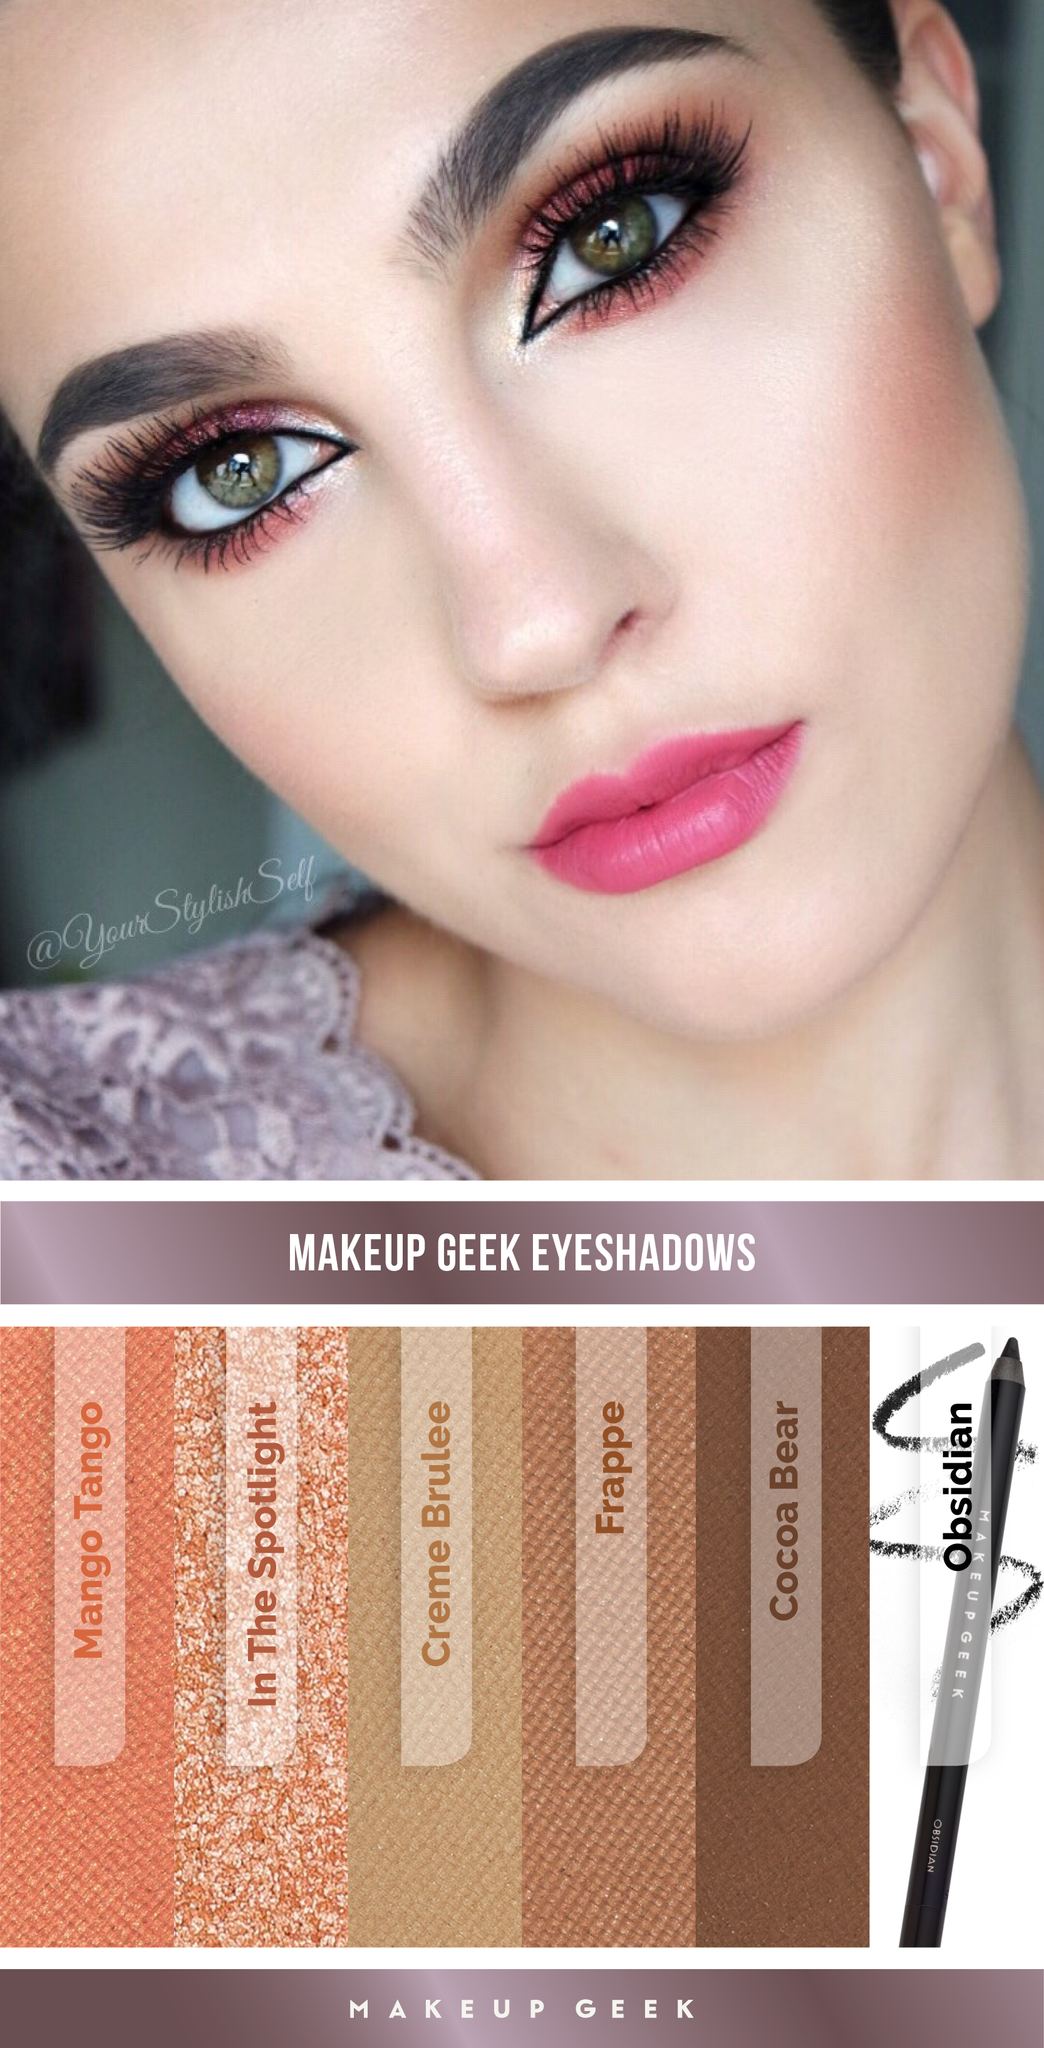 Grand Glamour Makeup Tutorial Makeup Geek Makeup Geek Makeup Geek Cosmetics Glamour Makeup